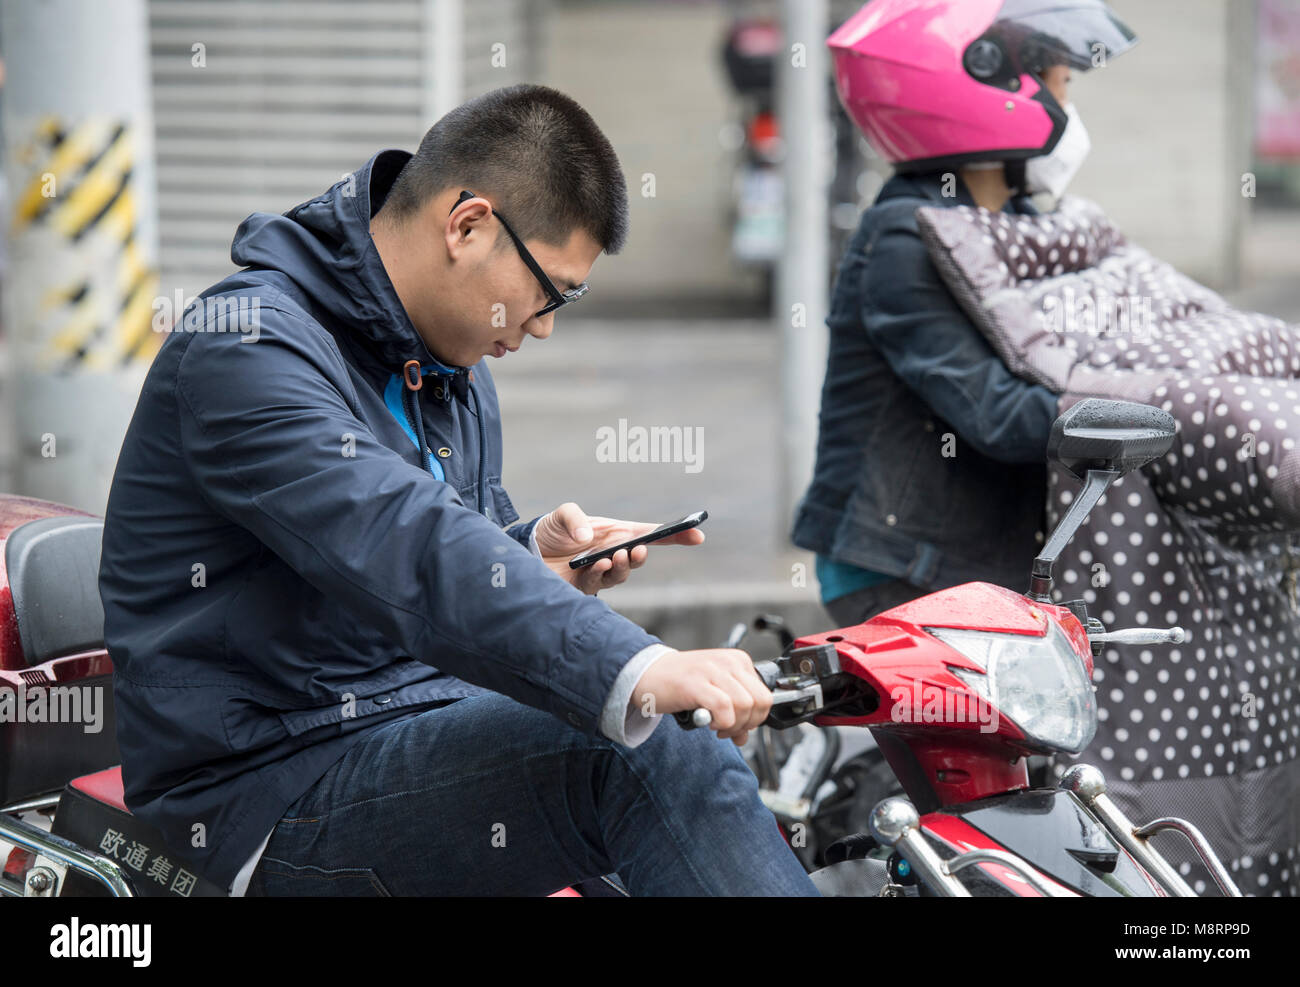 Man checking his mobile phone while sitting on a scooter in Shanghai, China - Stock Image